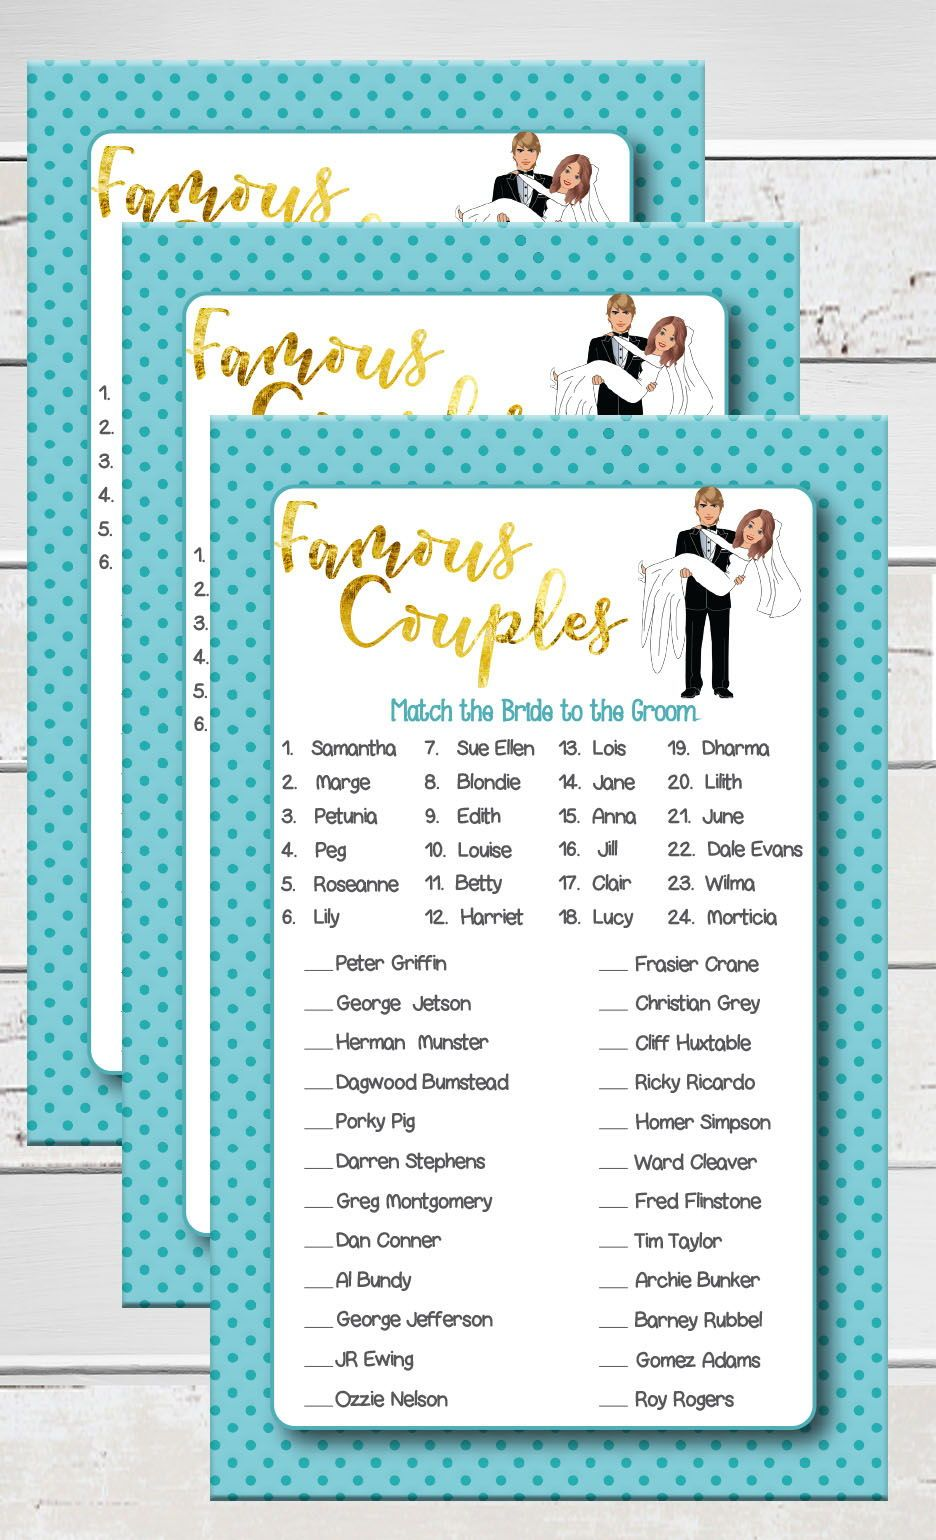 famous couples shower game fun game for engagement parties and couples showers teal poke a dots and gold accents with a groom holding a bride